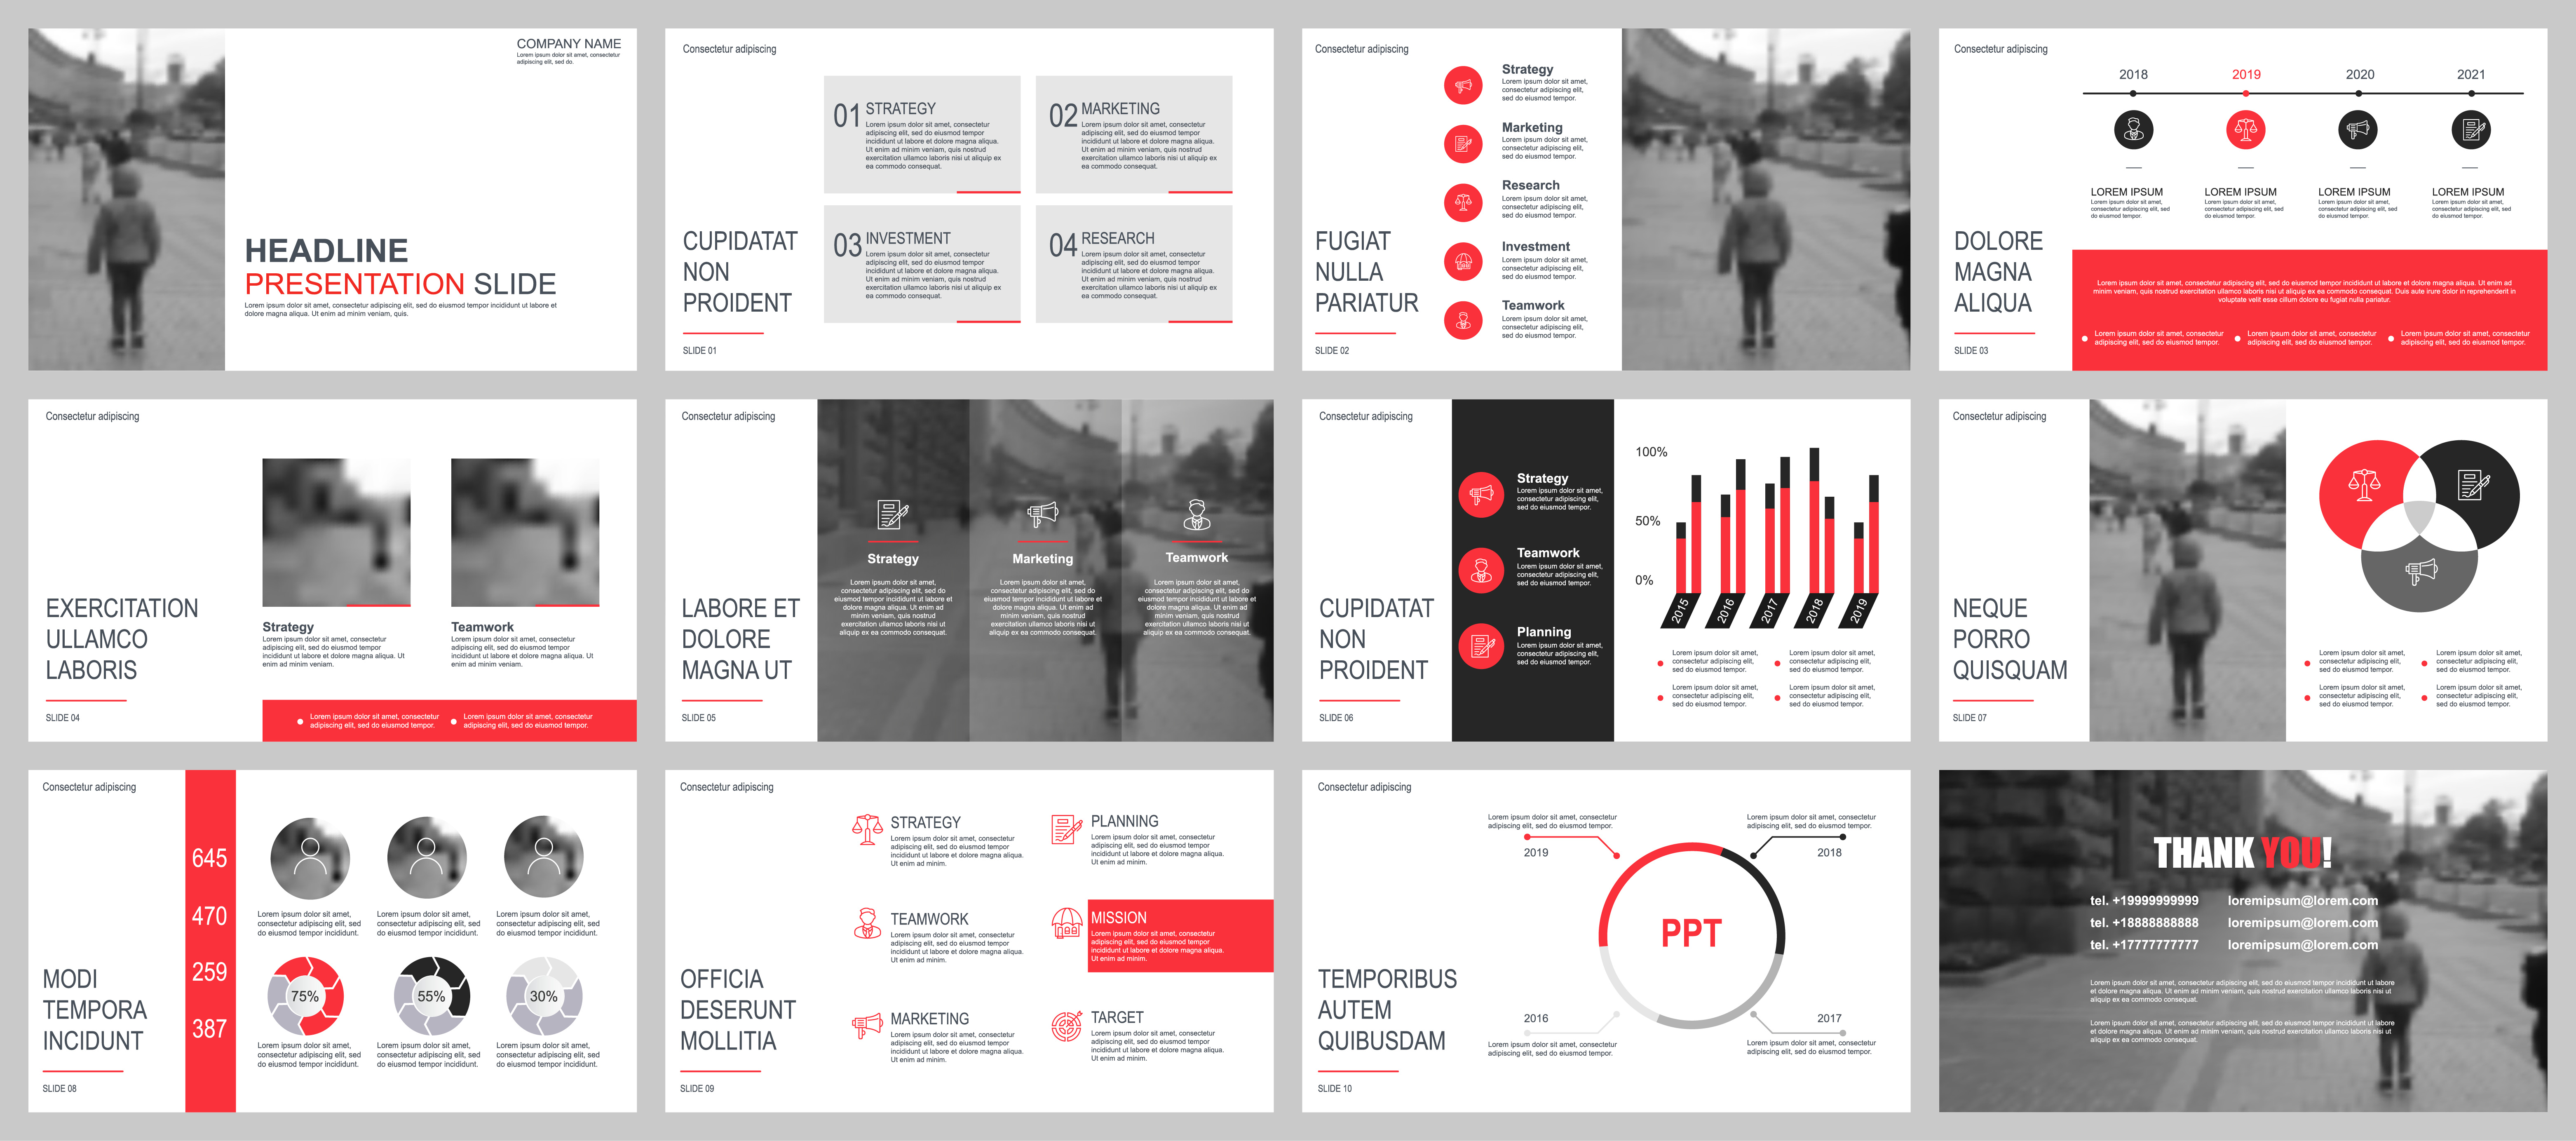 Business presentation powerpoint slides templates from infographic business presentation powerpoint slides templates from infographic elements download free vector art stock graphics images flashek Image collections